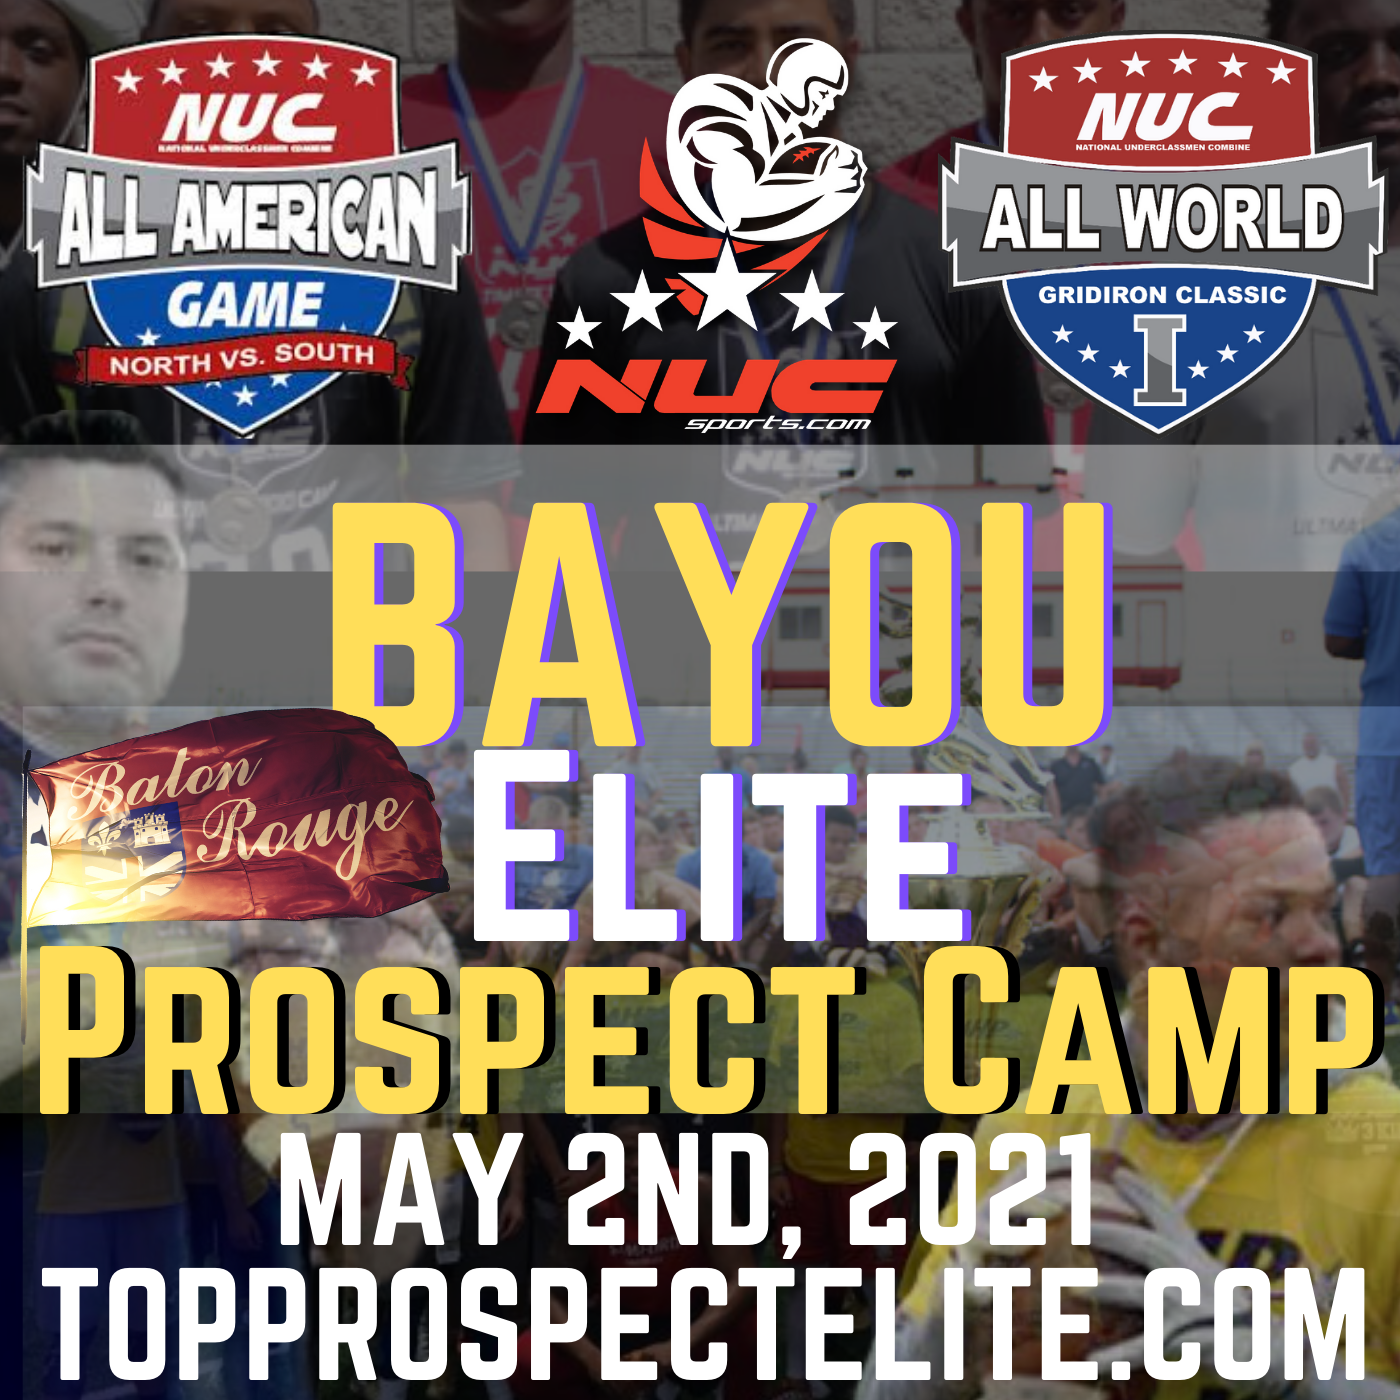 Coach Schuman's Bayou Elite Prospect Camp, May 2nd, 2021 Baton Rouge, LA, Denham Springs HS